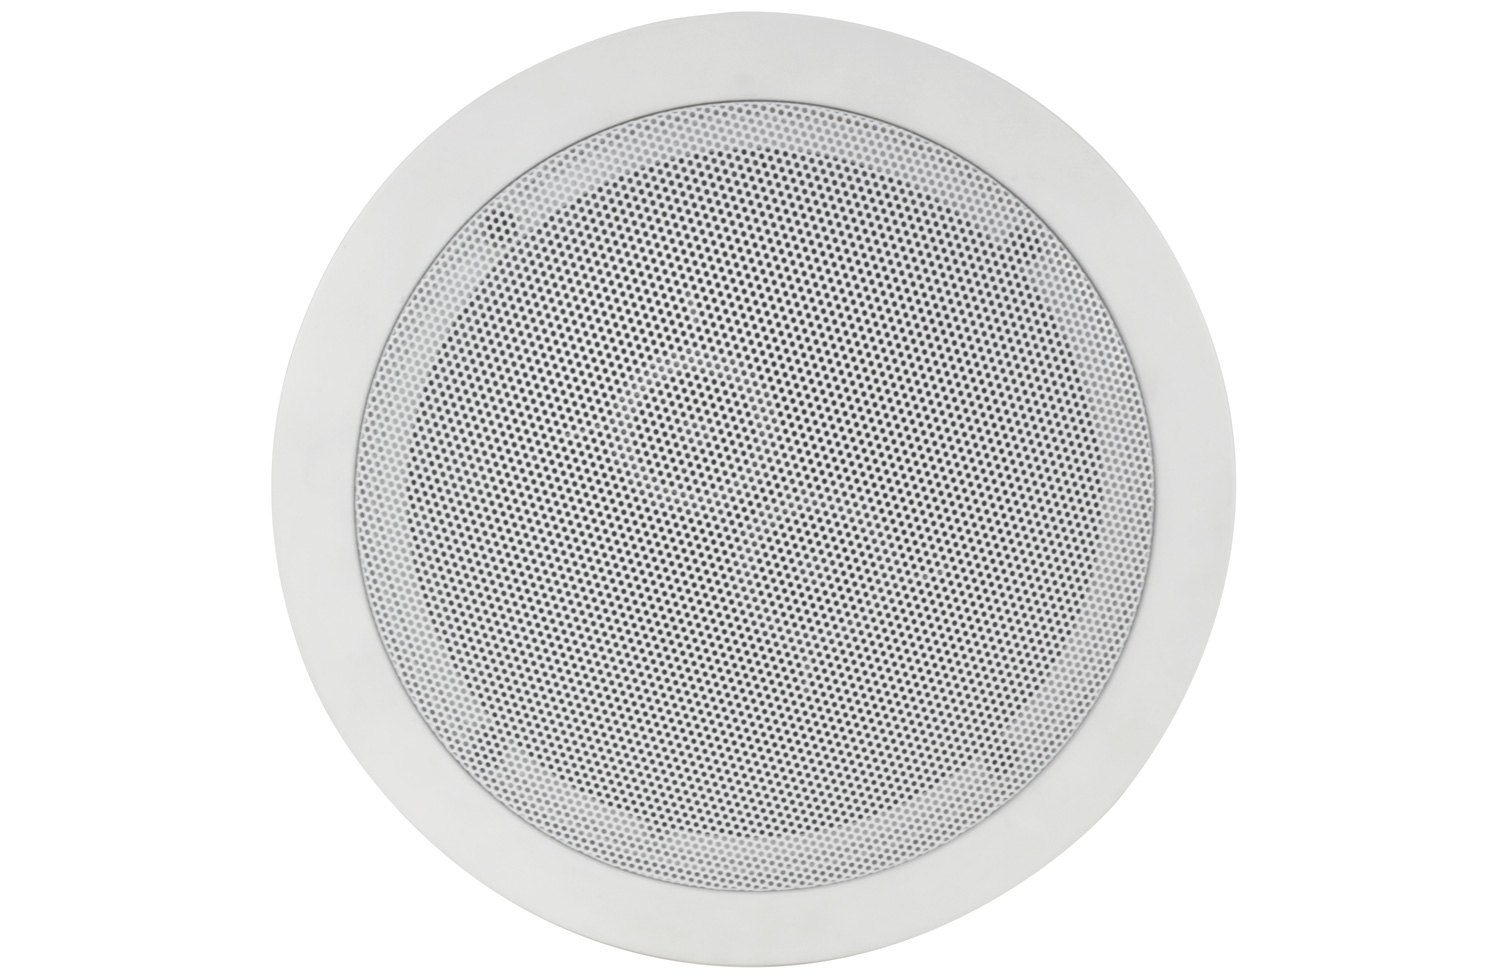 952537 Ceiling Speaker 6.5inch Dual Tweeters - Single